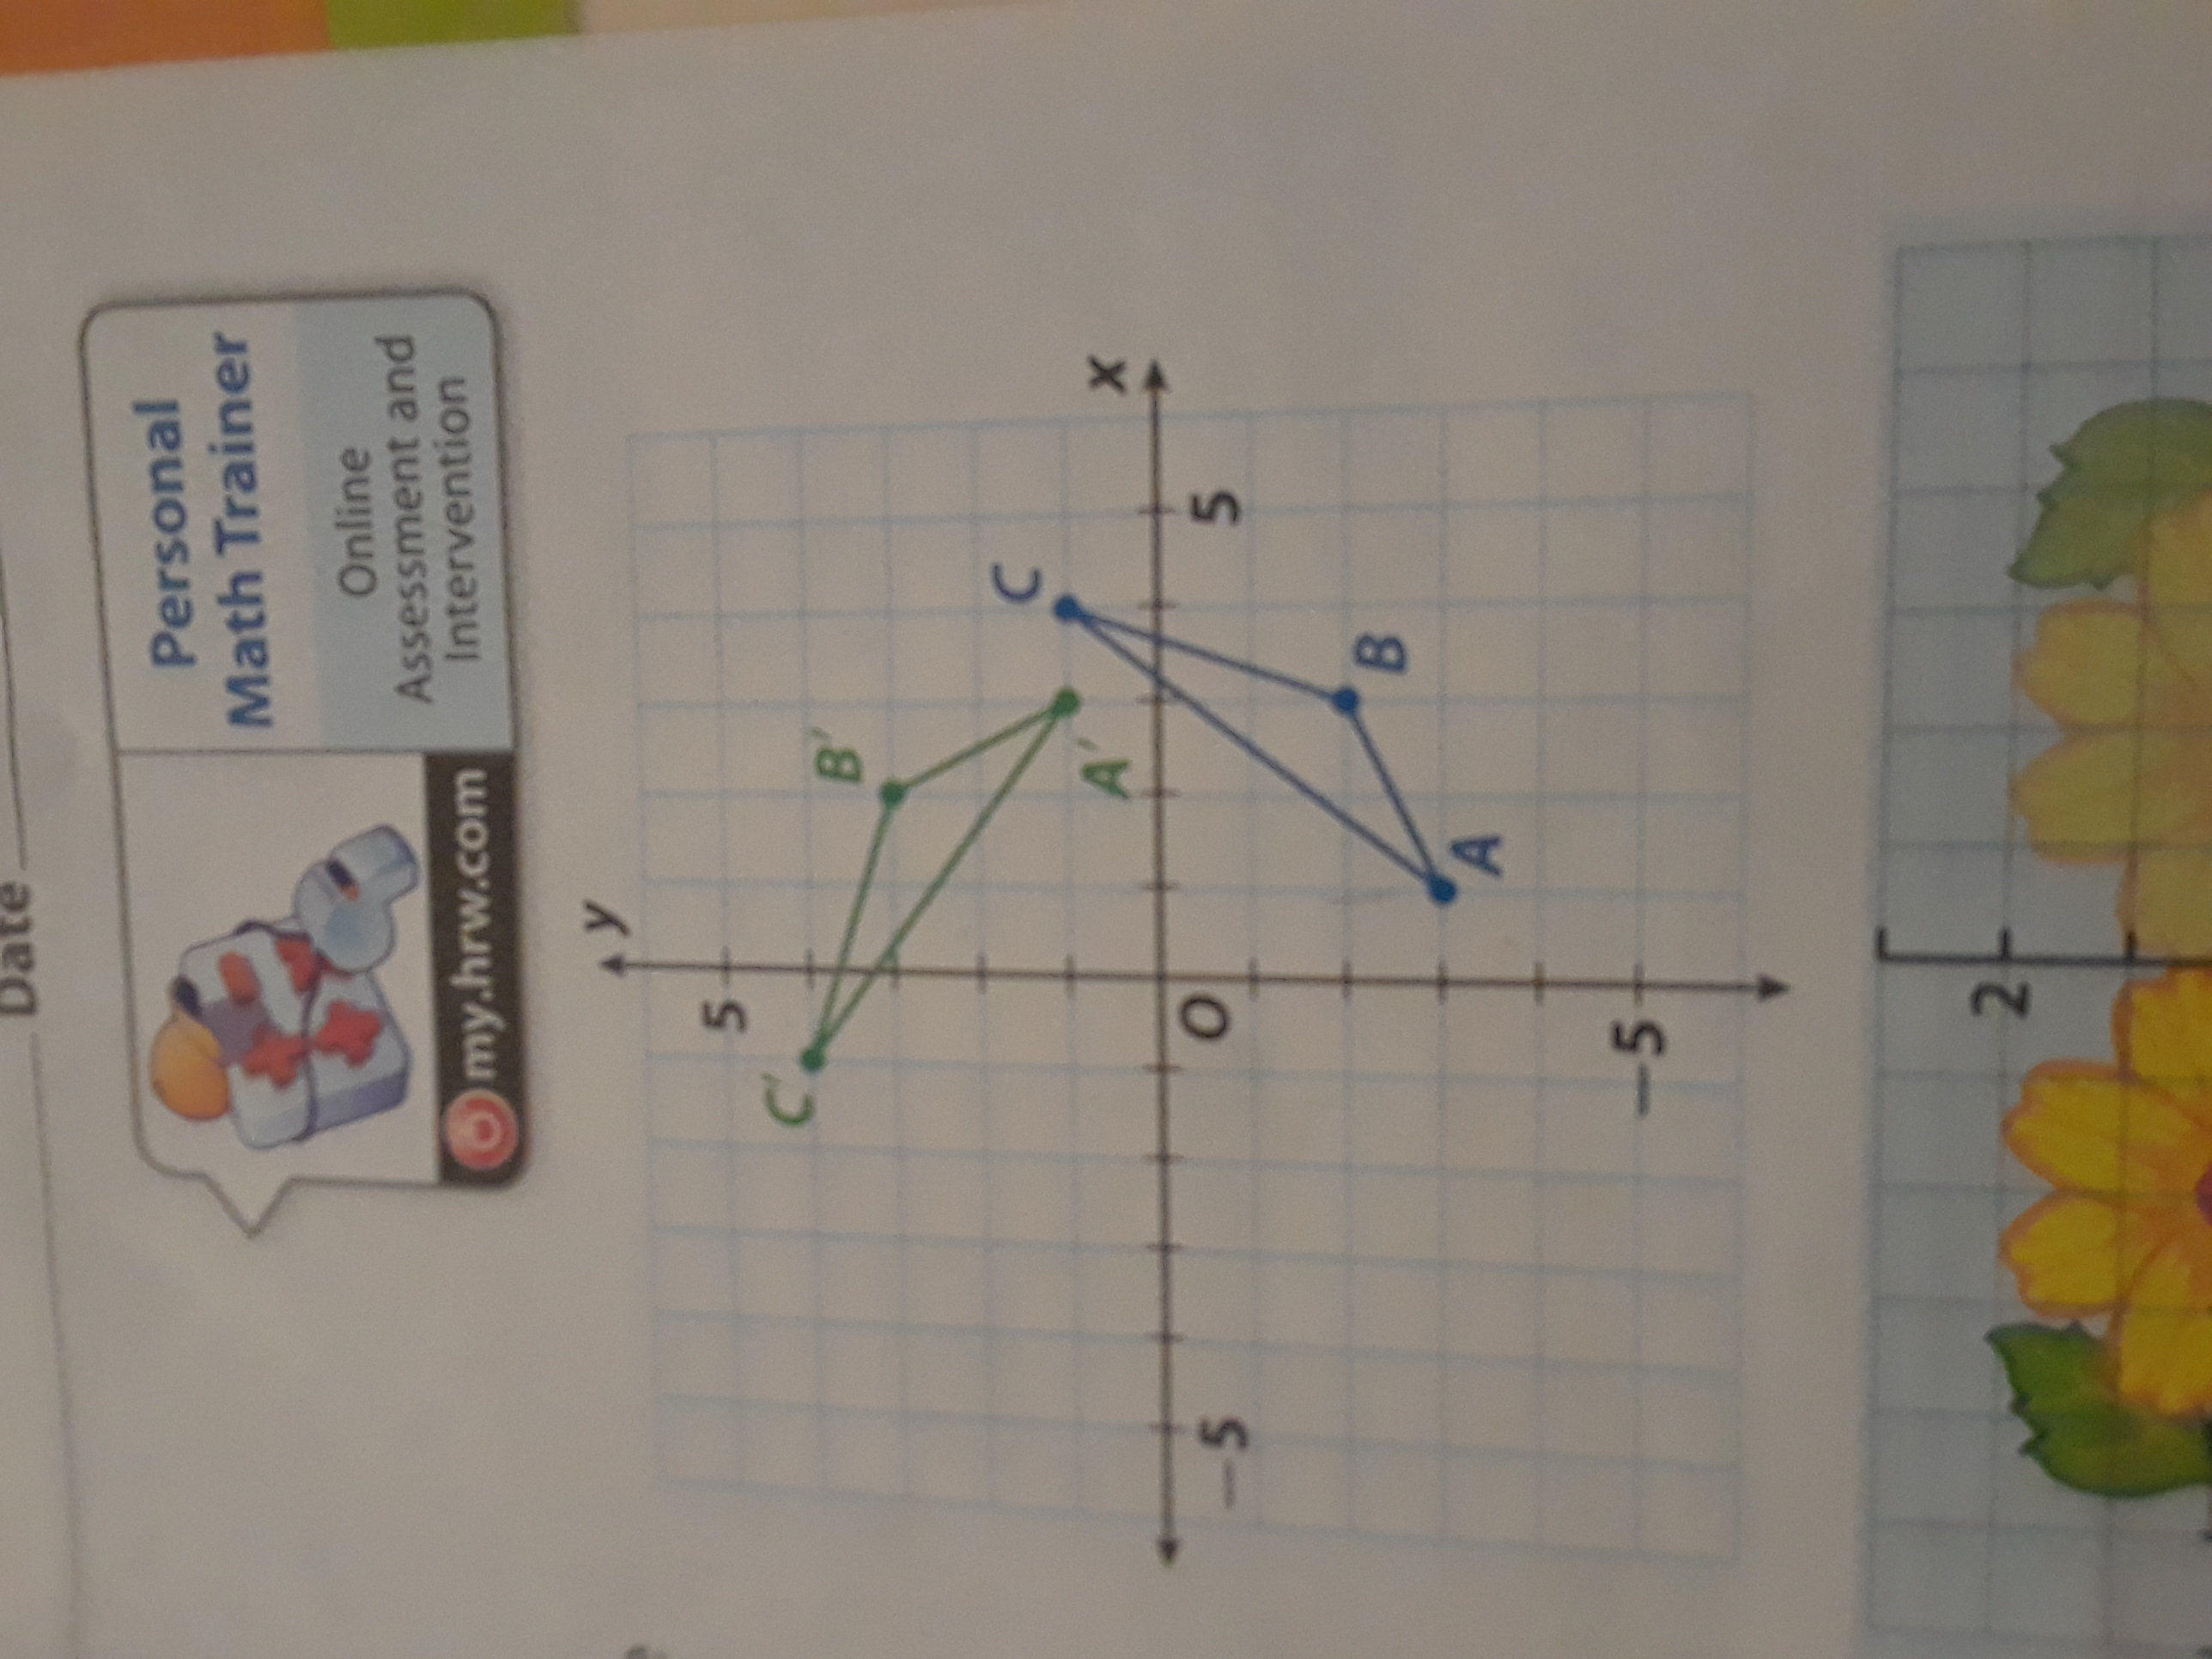 The Figure Shows Triangle Abc And A Rotation Of The